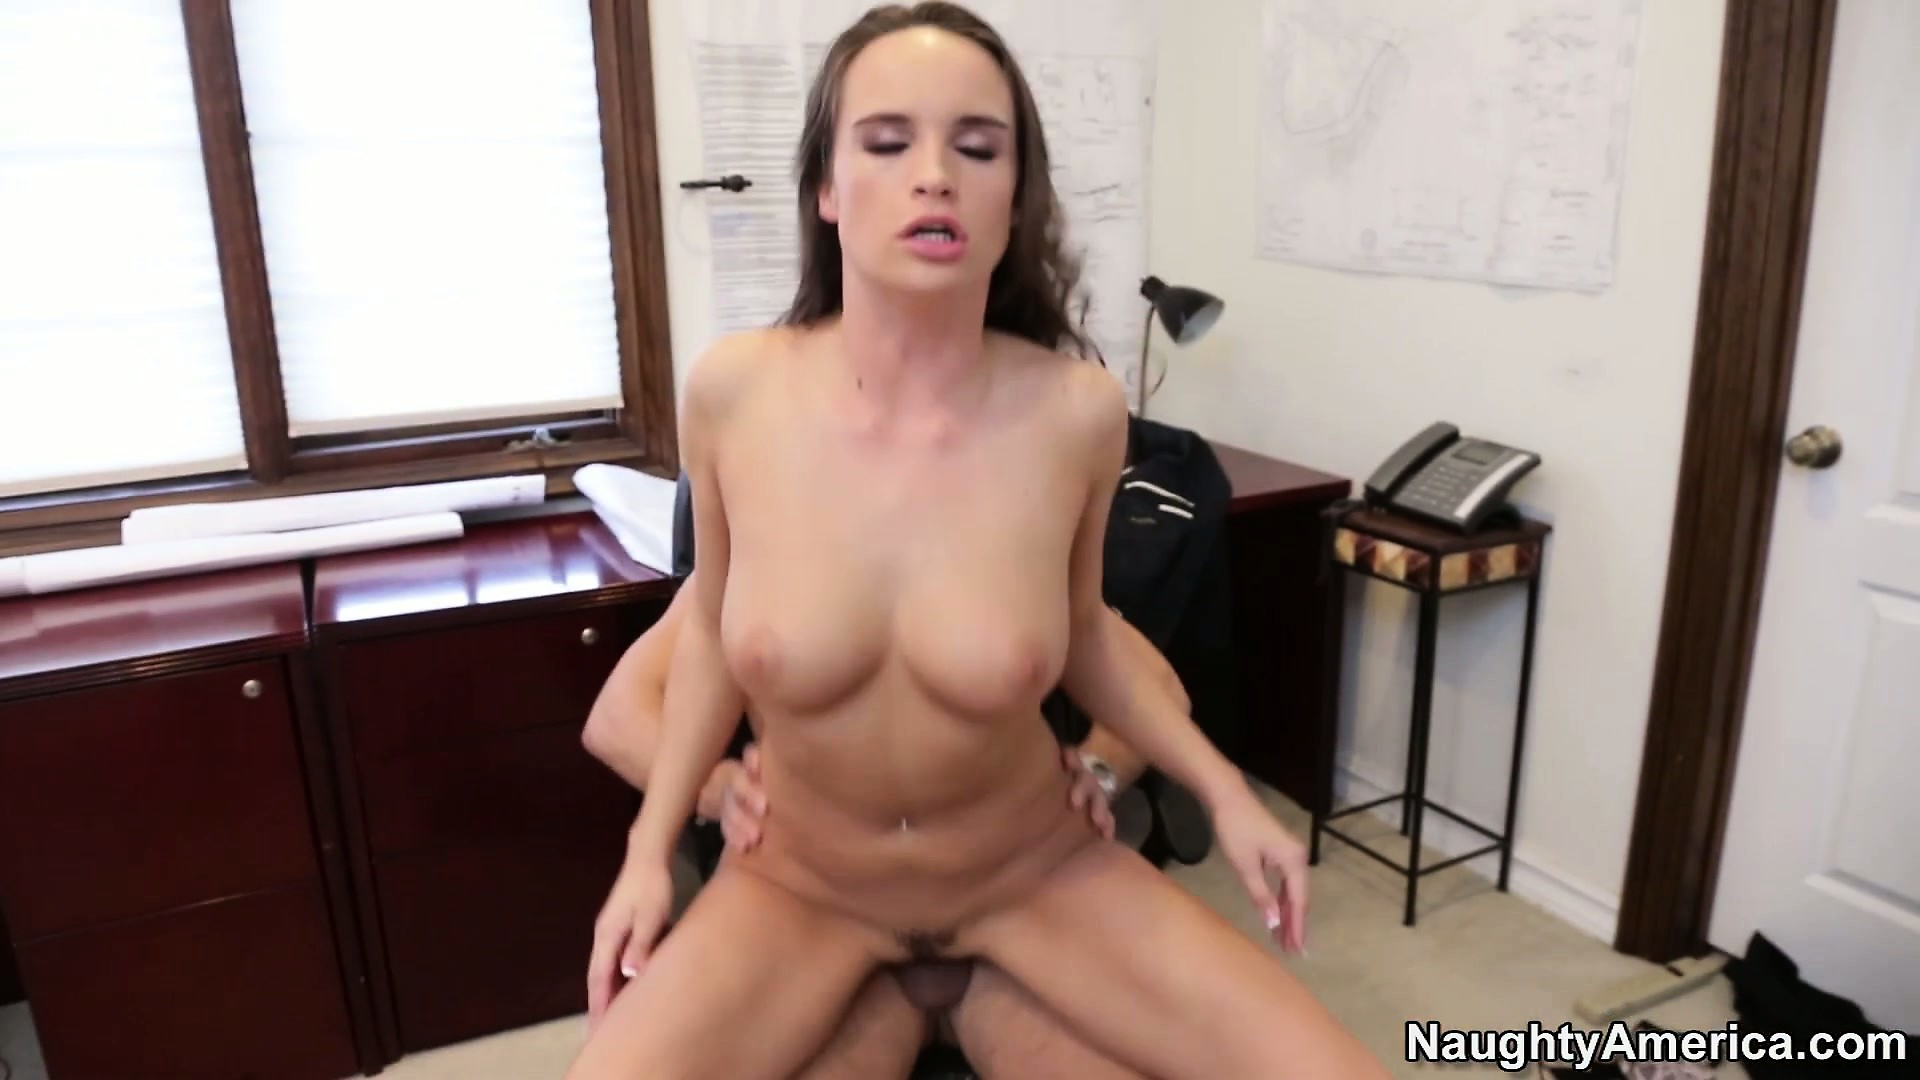 Porn Tube of Teal Conrad Is New And Eager To Please The Boss And His Raging Boner